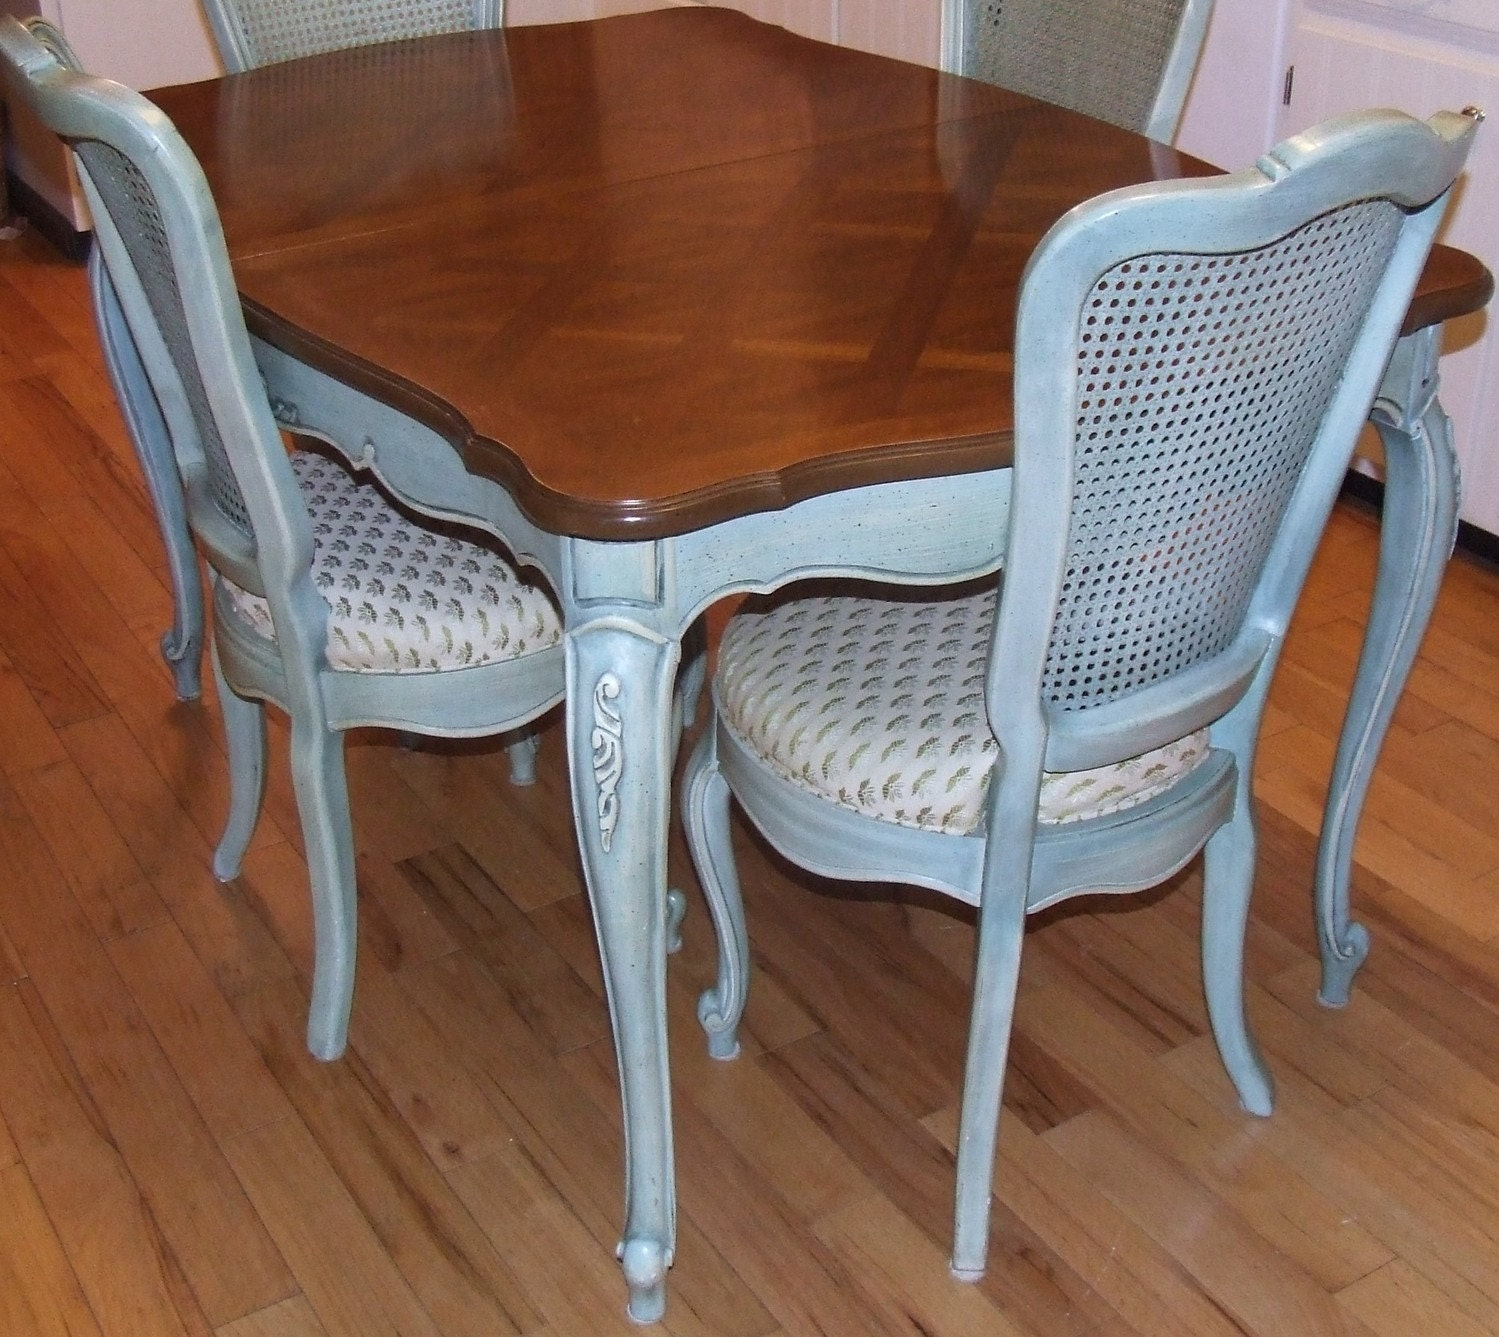 Vintage Thomasville French Blue DINING TABLE 2 leaves : ilfullxfull158773524 from www.etsy.com size 1499 x 1337 jpeg 406kB